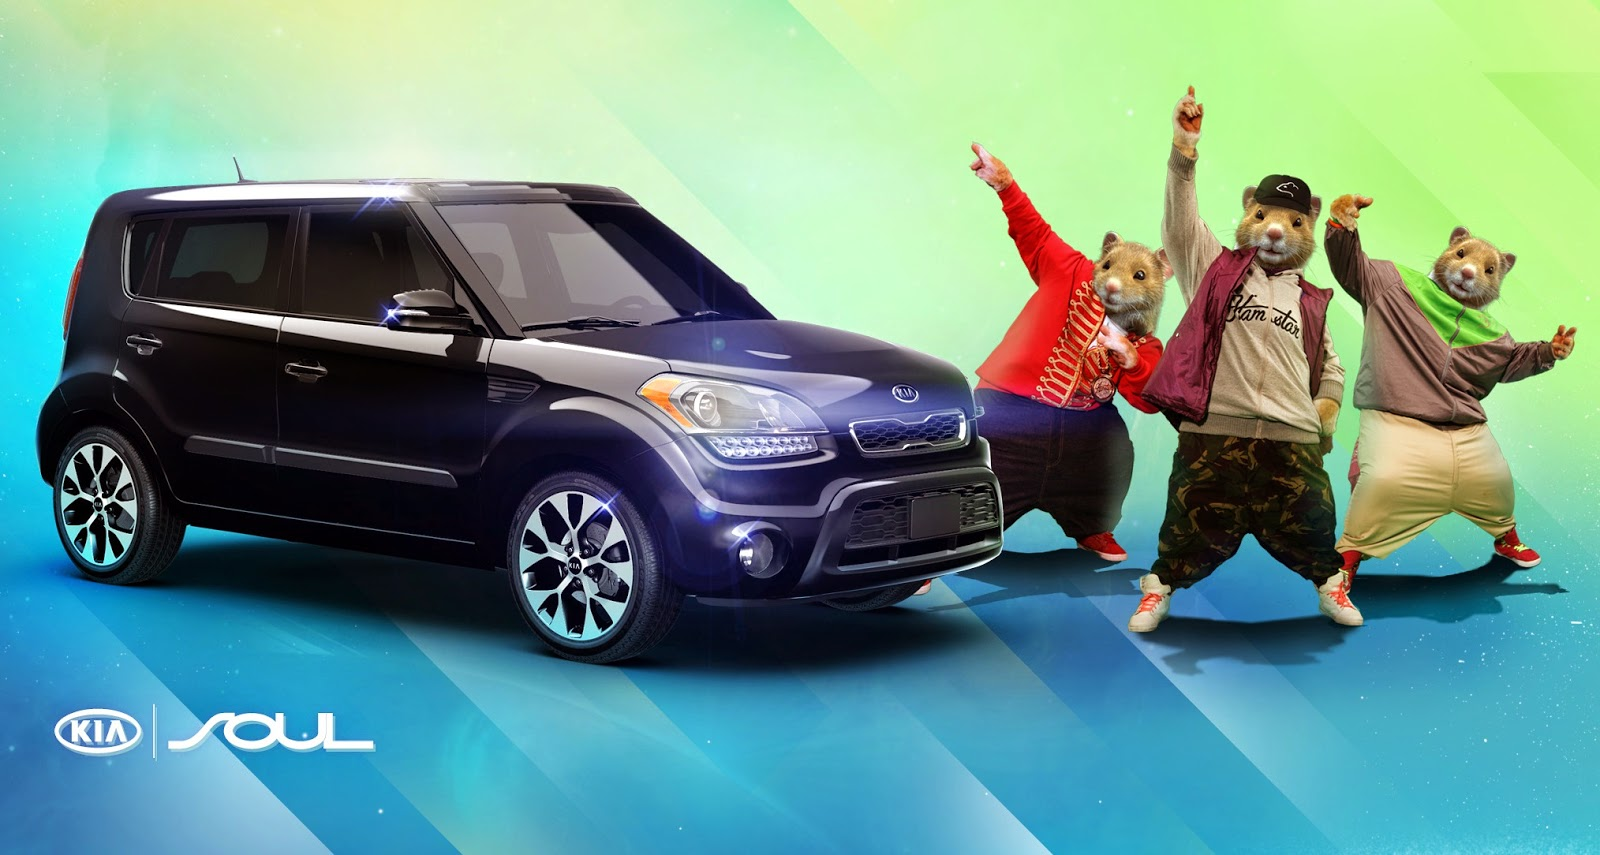 Kia Soul Commercial >> The Kia Soul Hamster Commercials A New World On Wheels